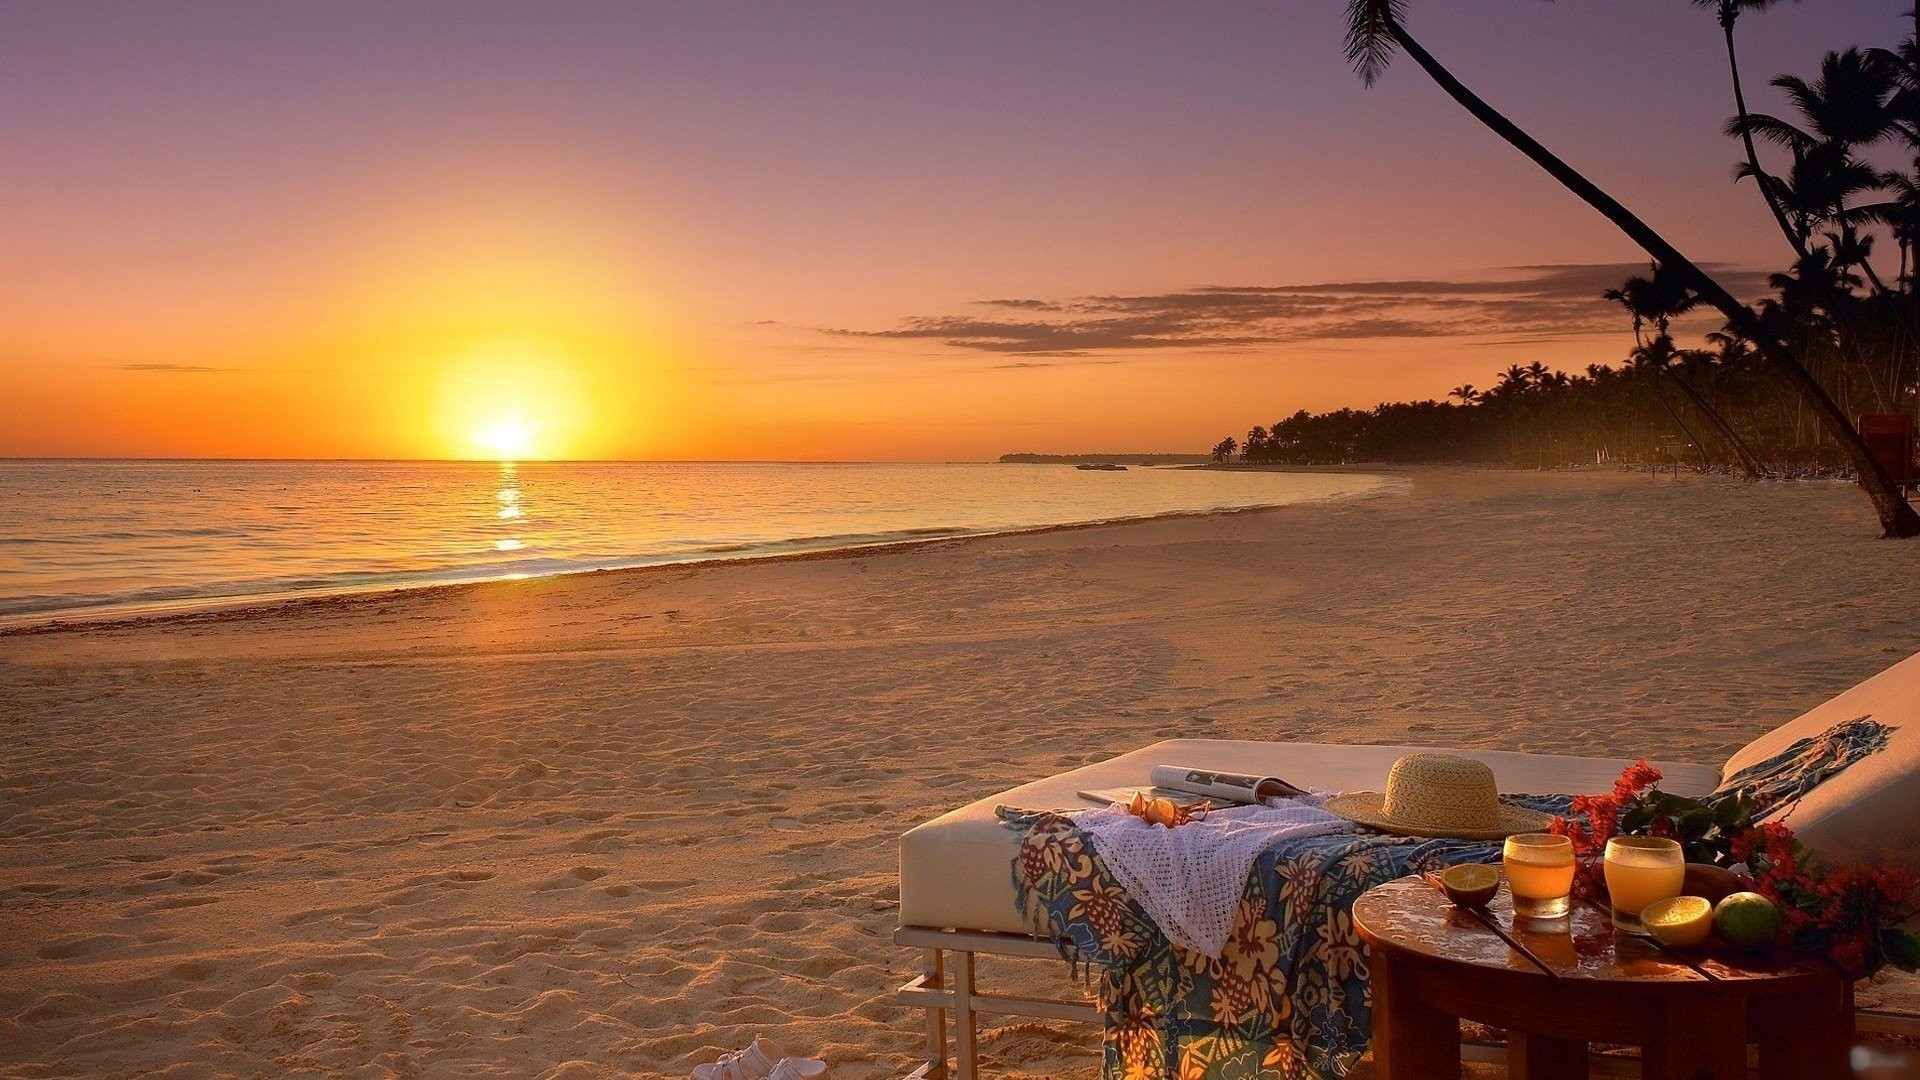 beaches-beach-sunset-nature-paradise-download-background-wallpaper-pictures-hd